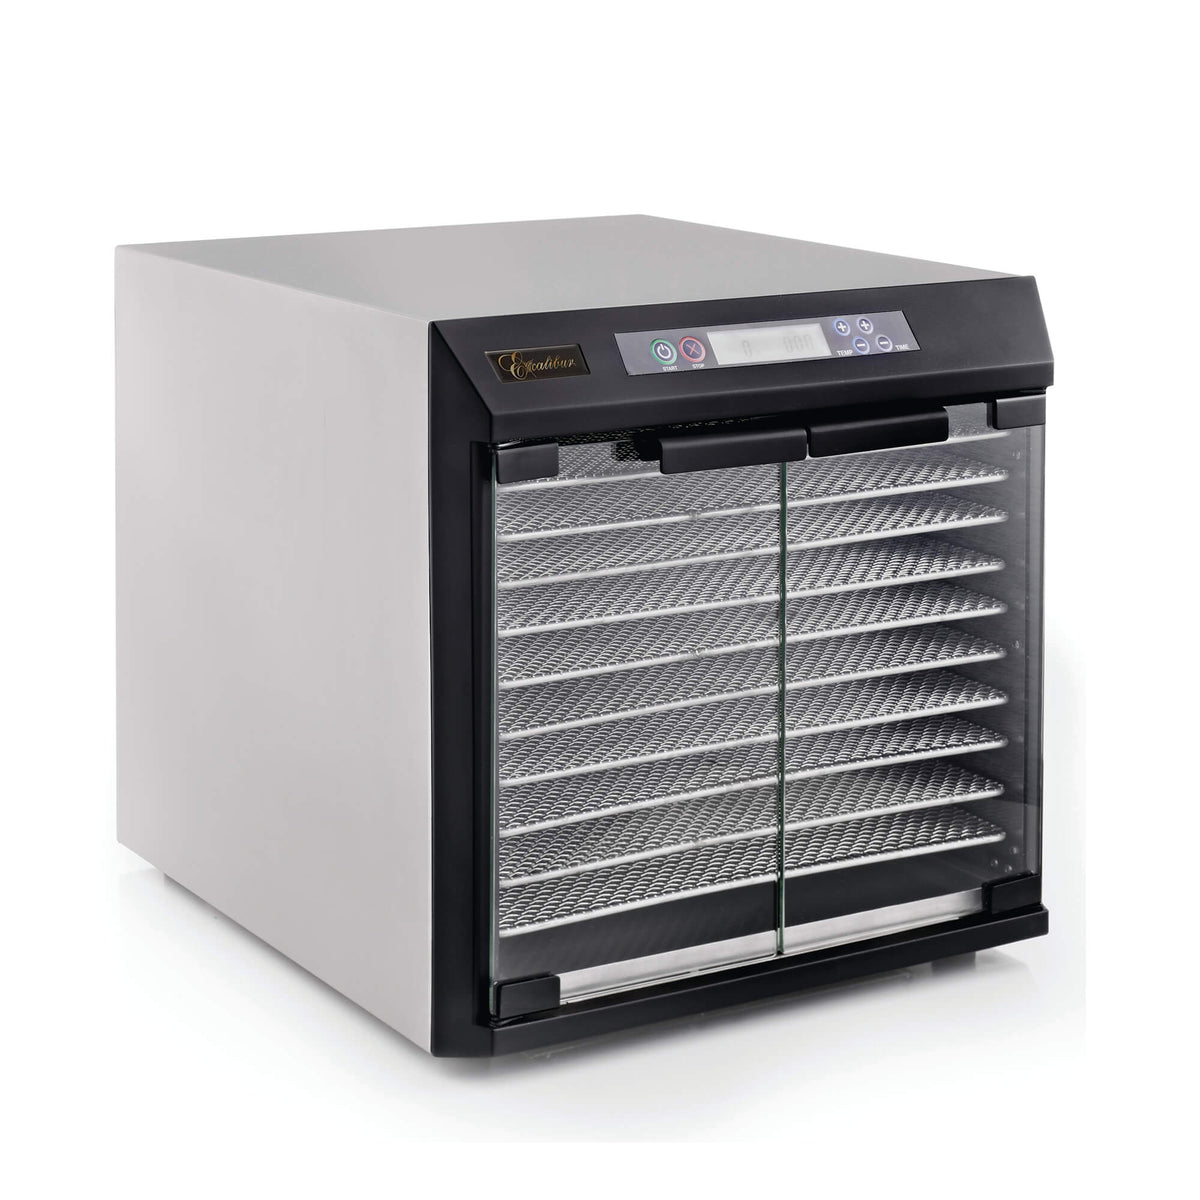 Excalibur EXC10EL 10 tray stainless steel digital dehydrator with glass armoured doors closed.